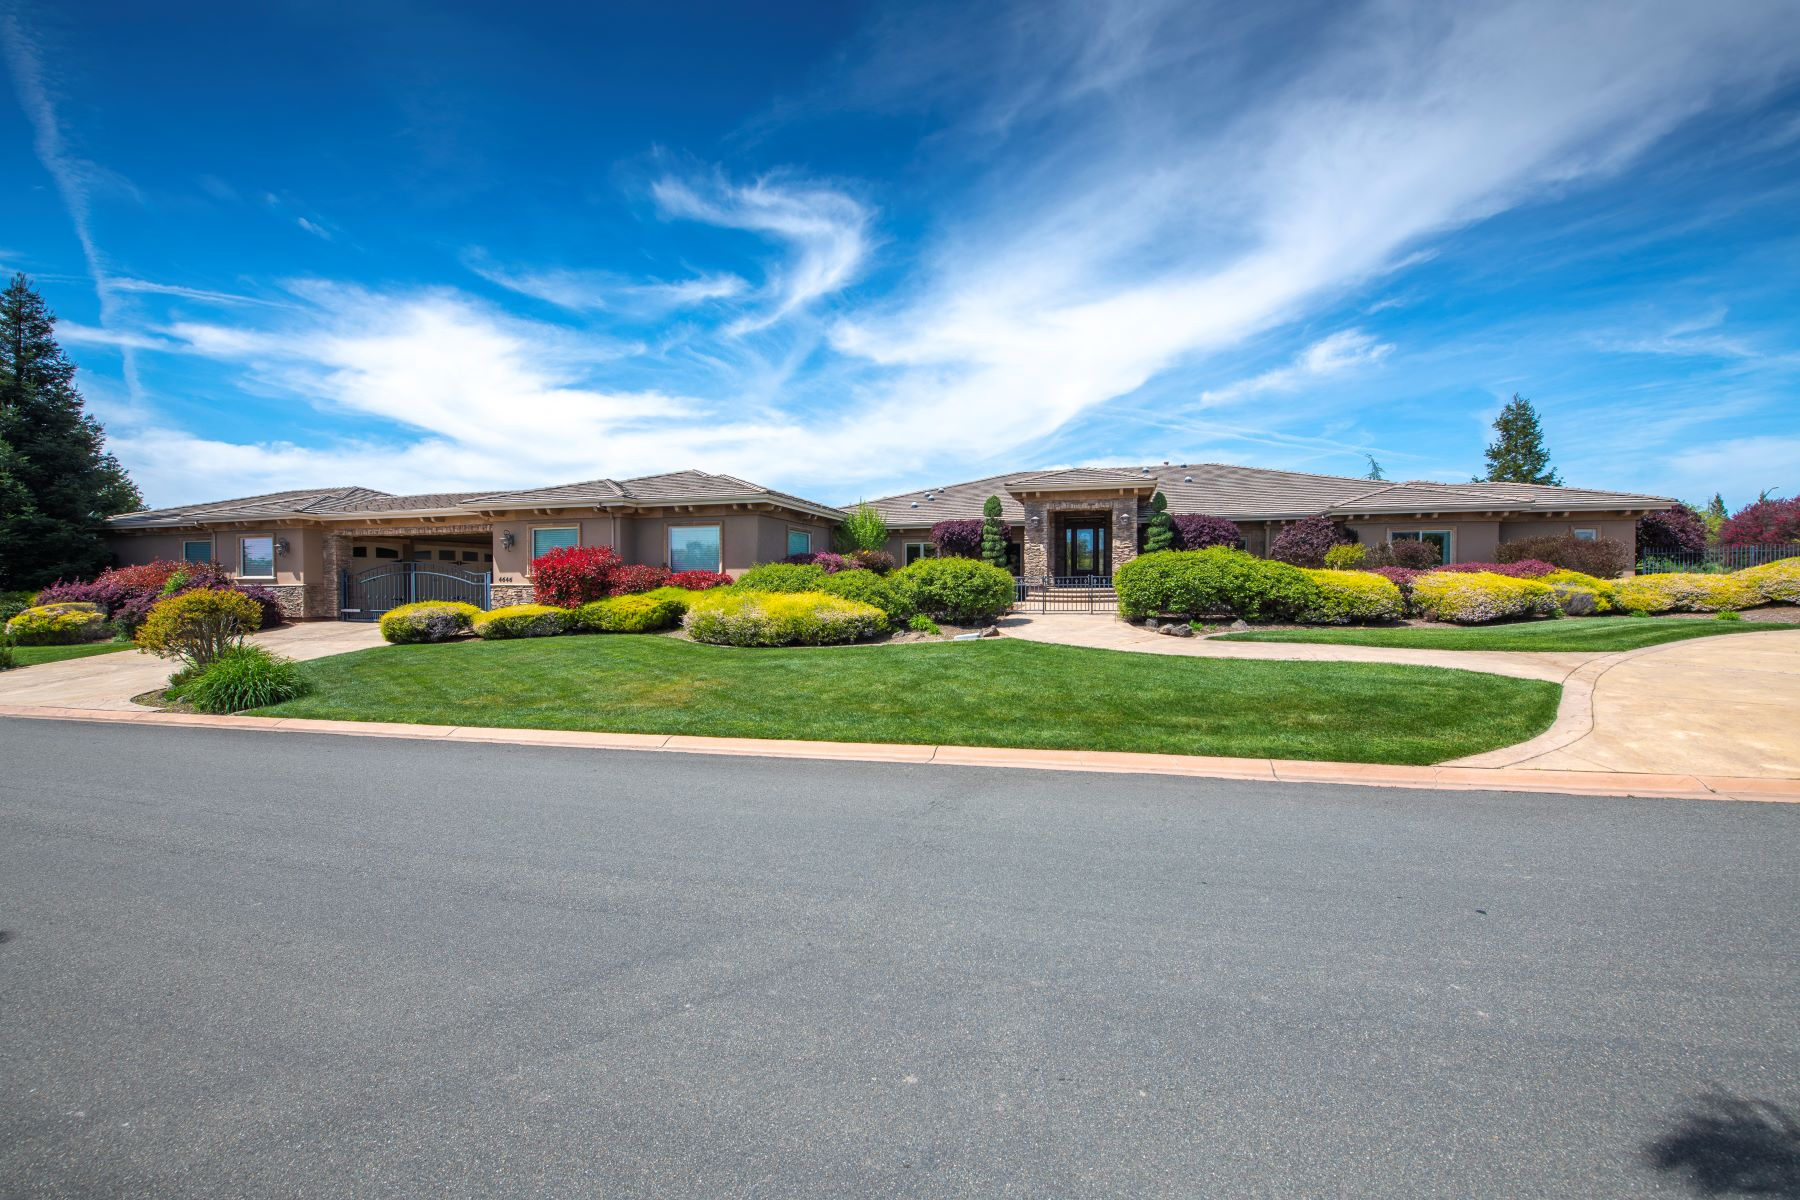 Single Family Home for Active at 4646 King Ranch Pl,Granite Bay, CA 95746 4646 King Ranch Pl Granite Bay, California 95746 United States